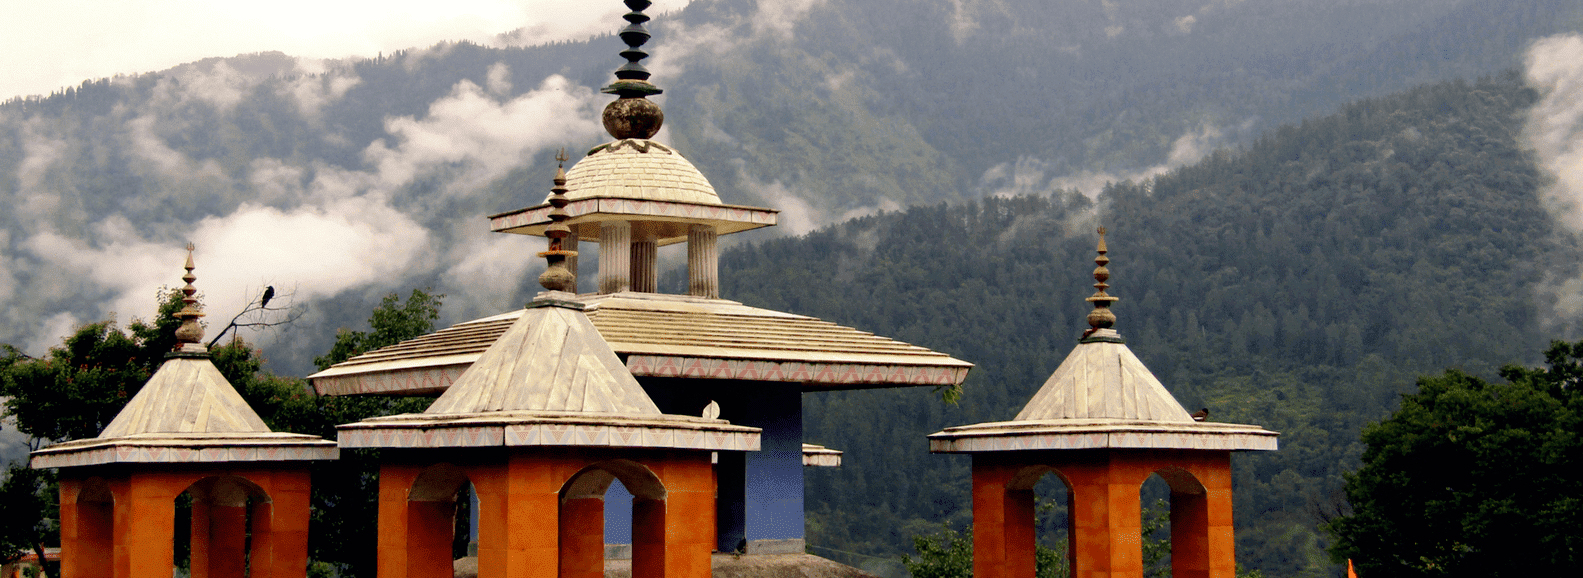 Uttarkashi temple image in Ganga valley Uttarakhand with clouds and mountaind behind